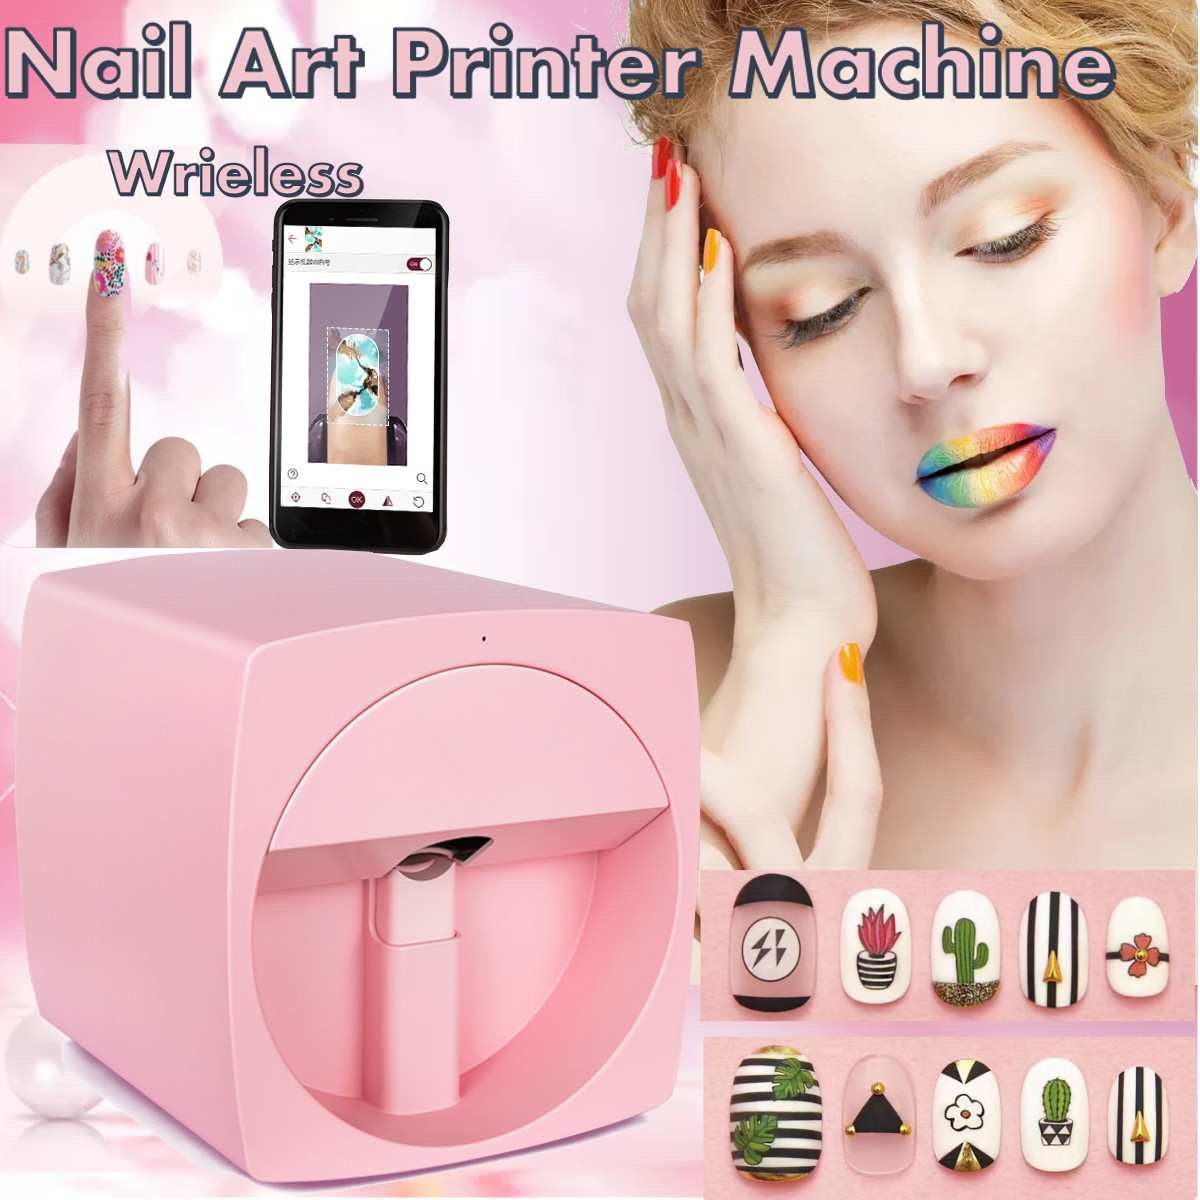 Mobile Nail Printer Manicure Transmission Picture Photo Pattern Color Printing advanced Nail Art Equipment